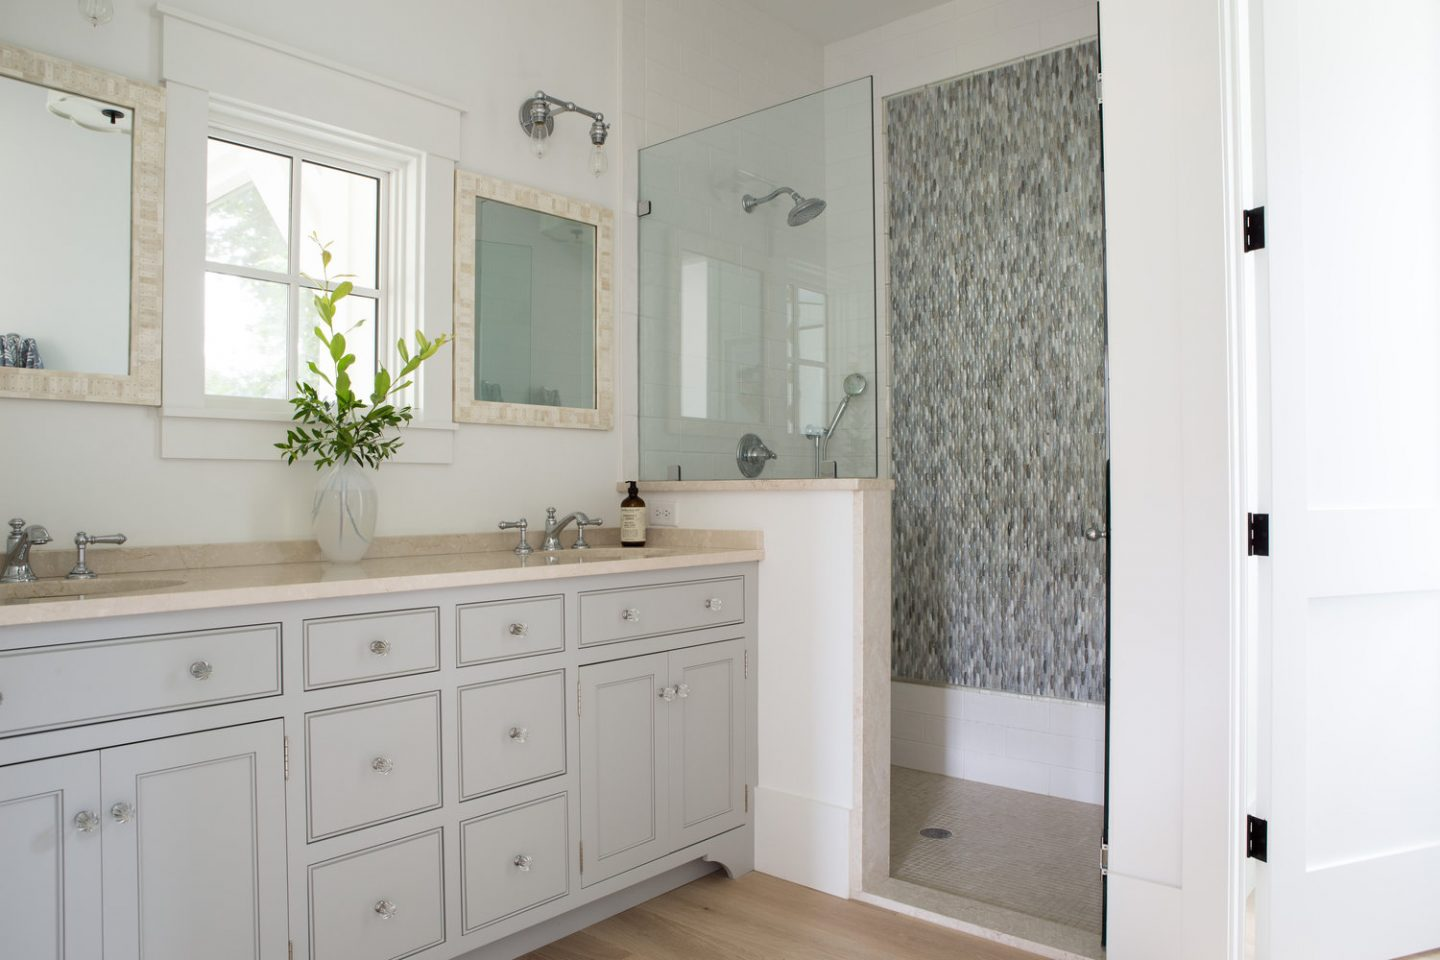 Master bath. Board and batten coastal cottage in Palmetto Bluff with modern farmhouse interior design by Lisa Furey.